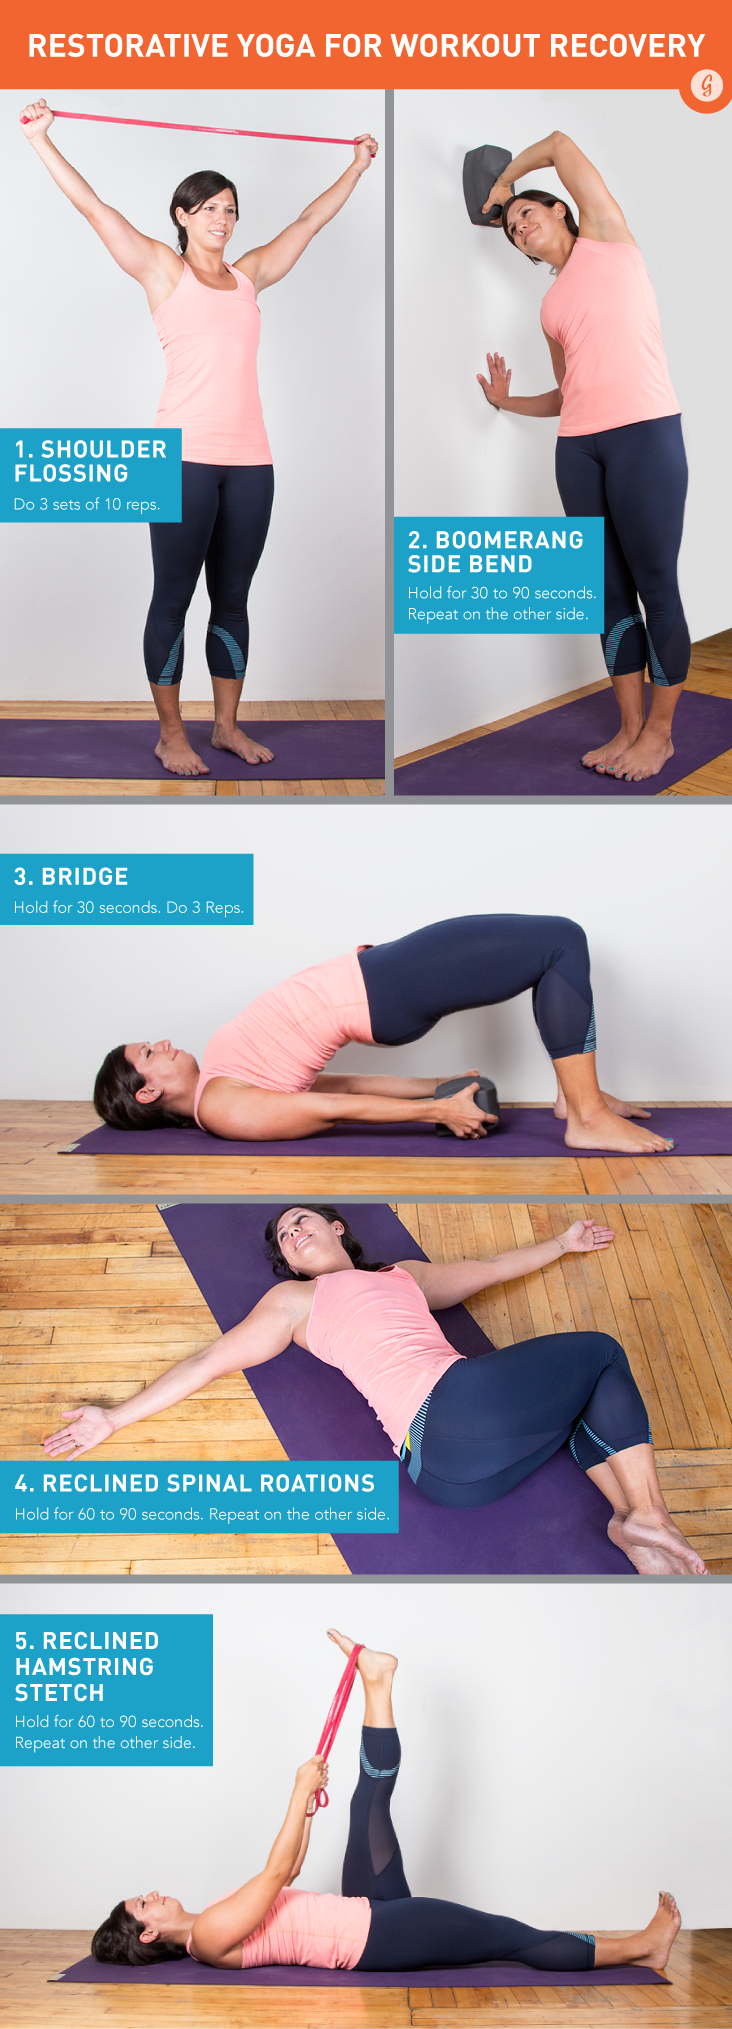 Restorative Yoga for Workout Recovery